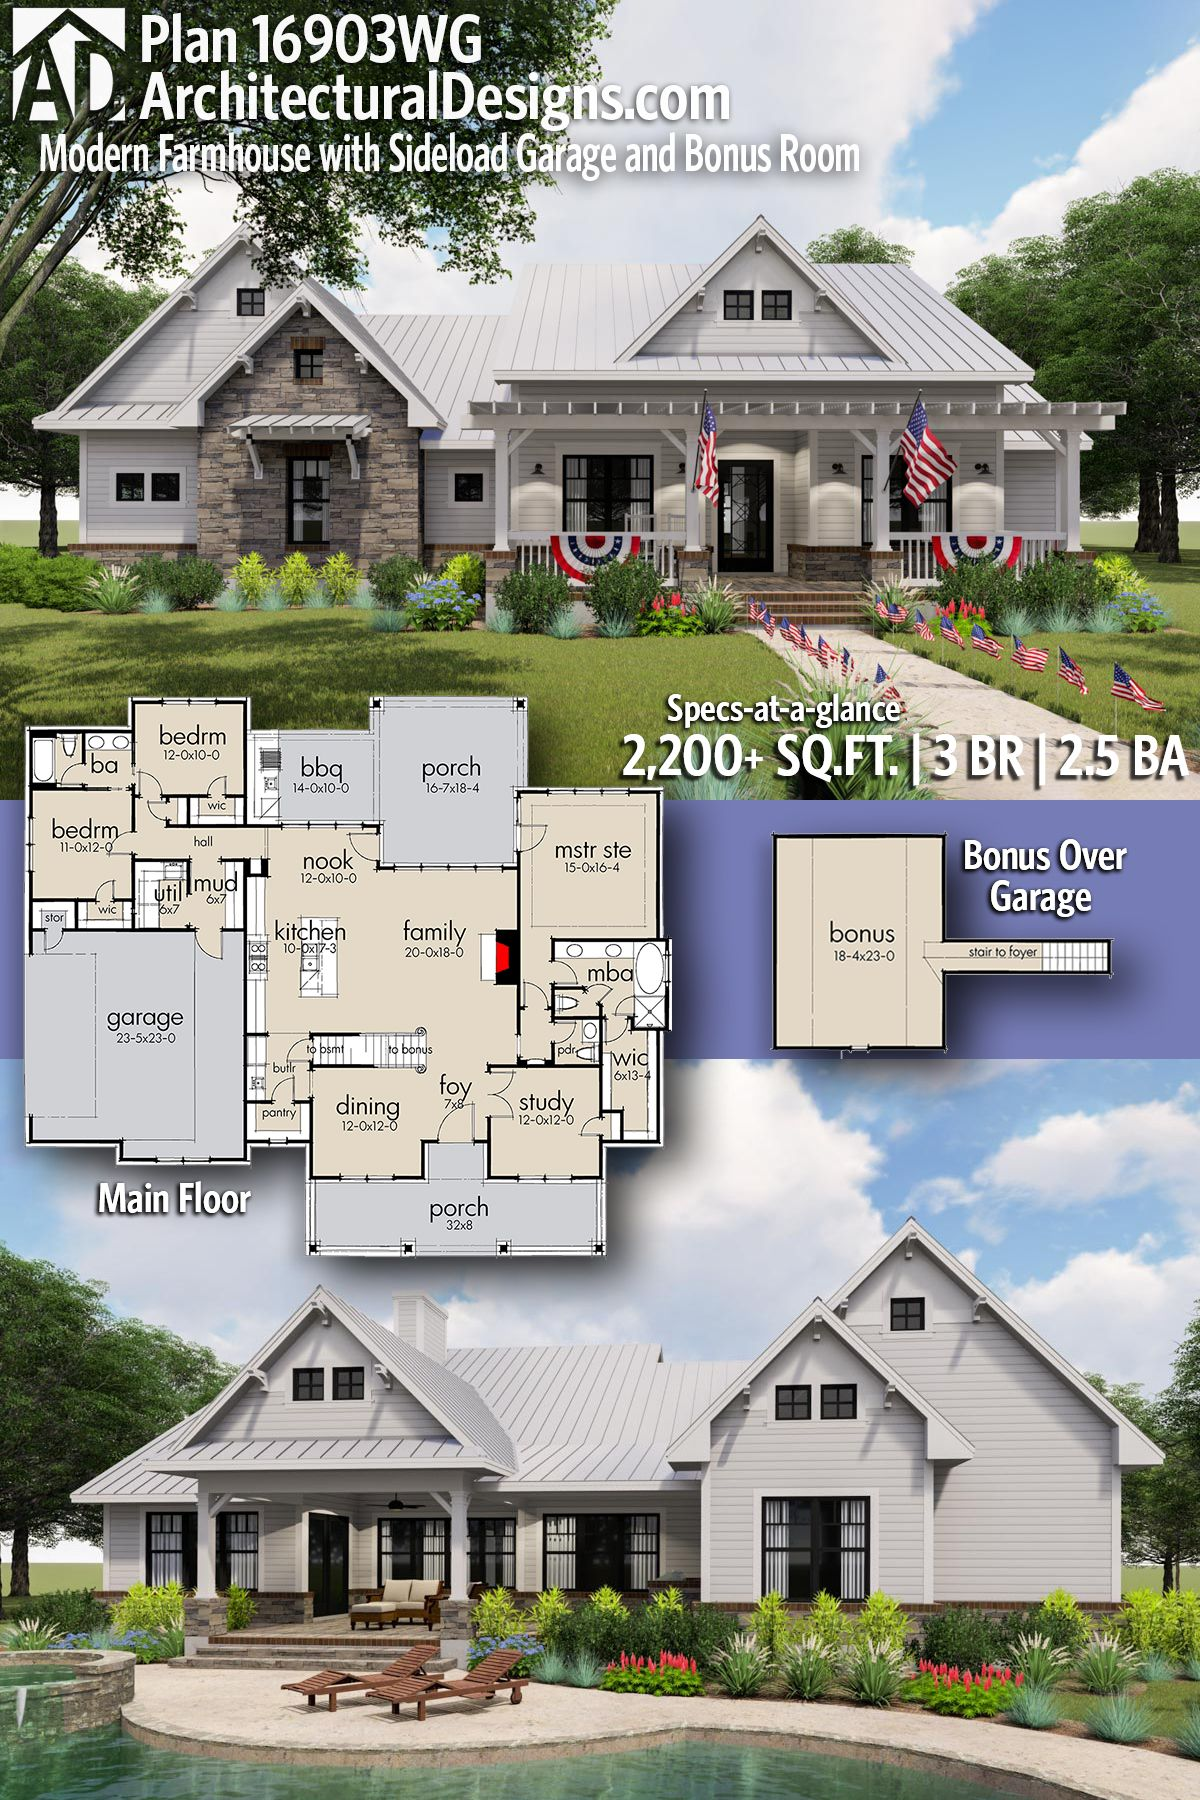 Introducing Architectural Designs Modern Farmhouse House Plan